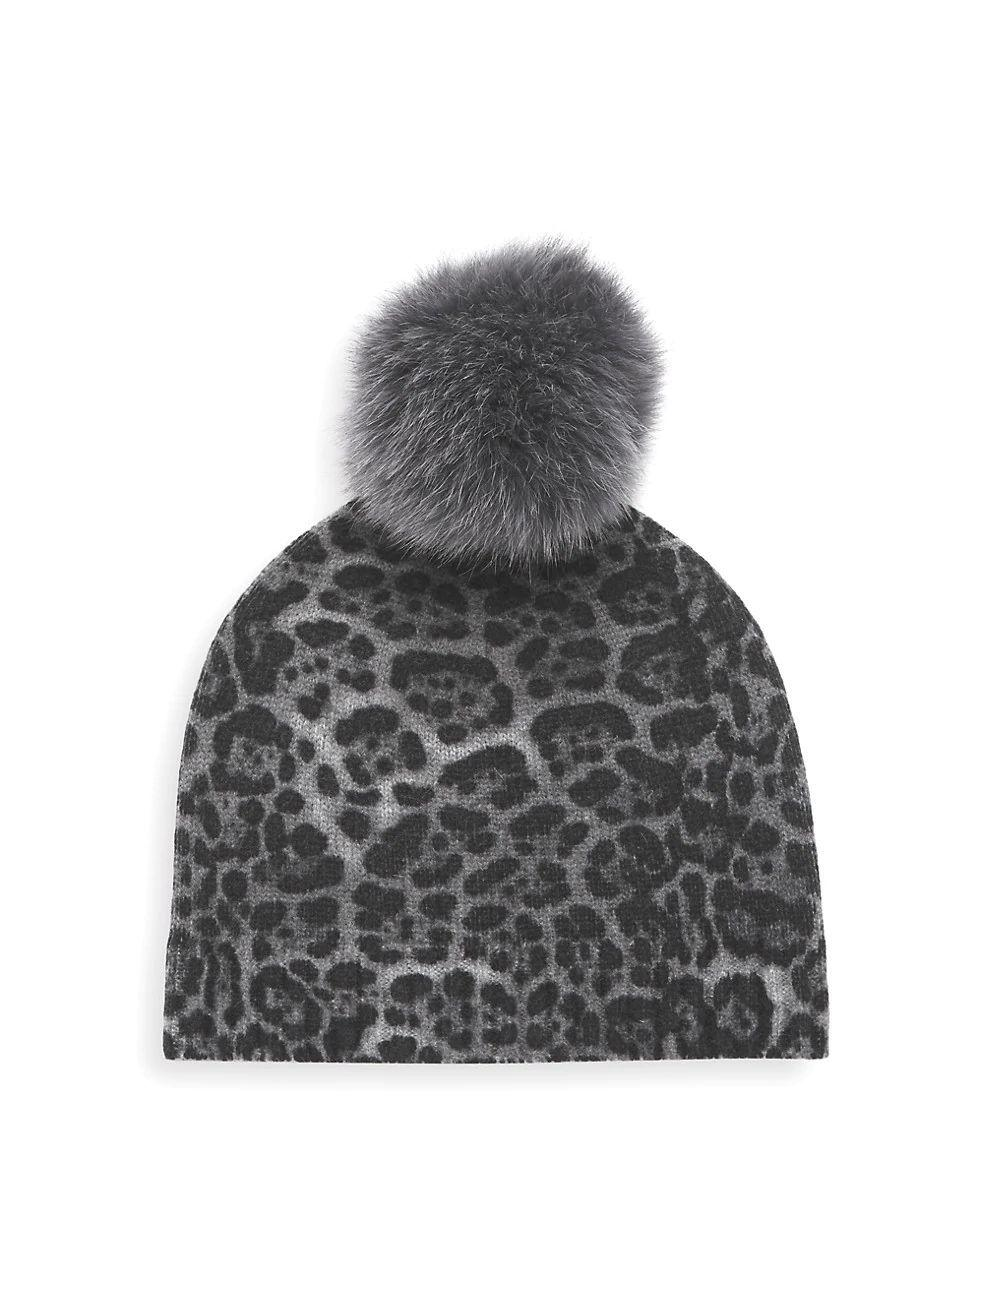 Leopard Beanie With Fur Pom Item # AC899B-F